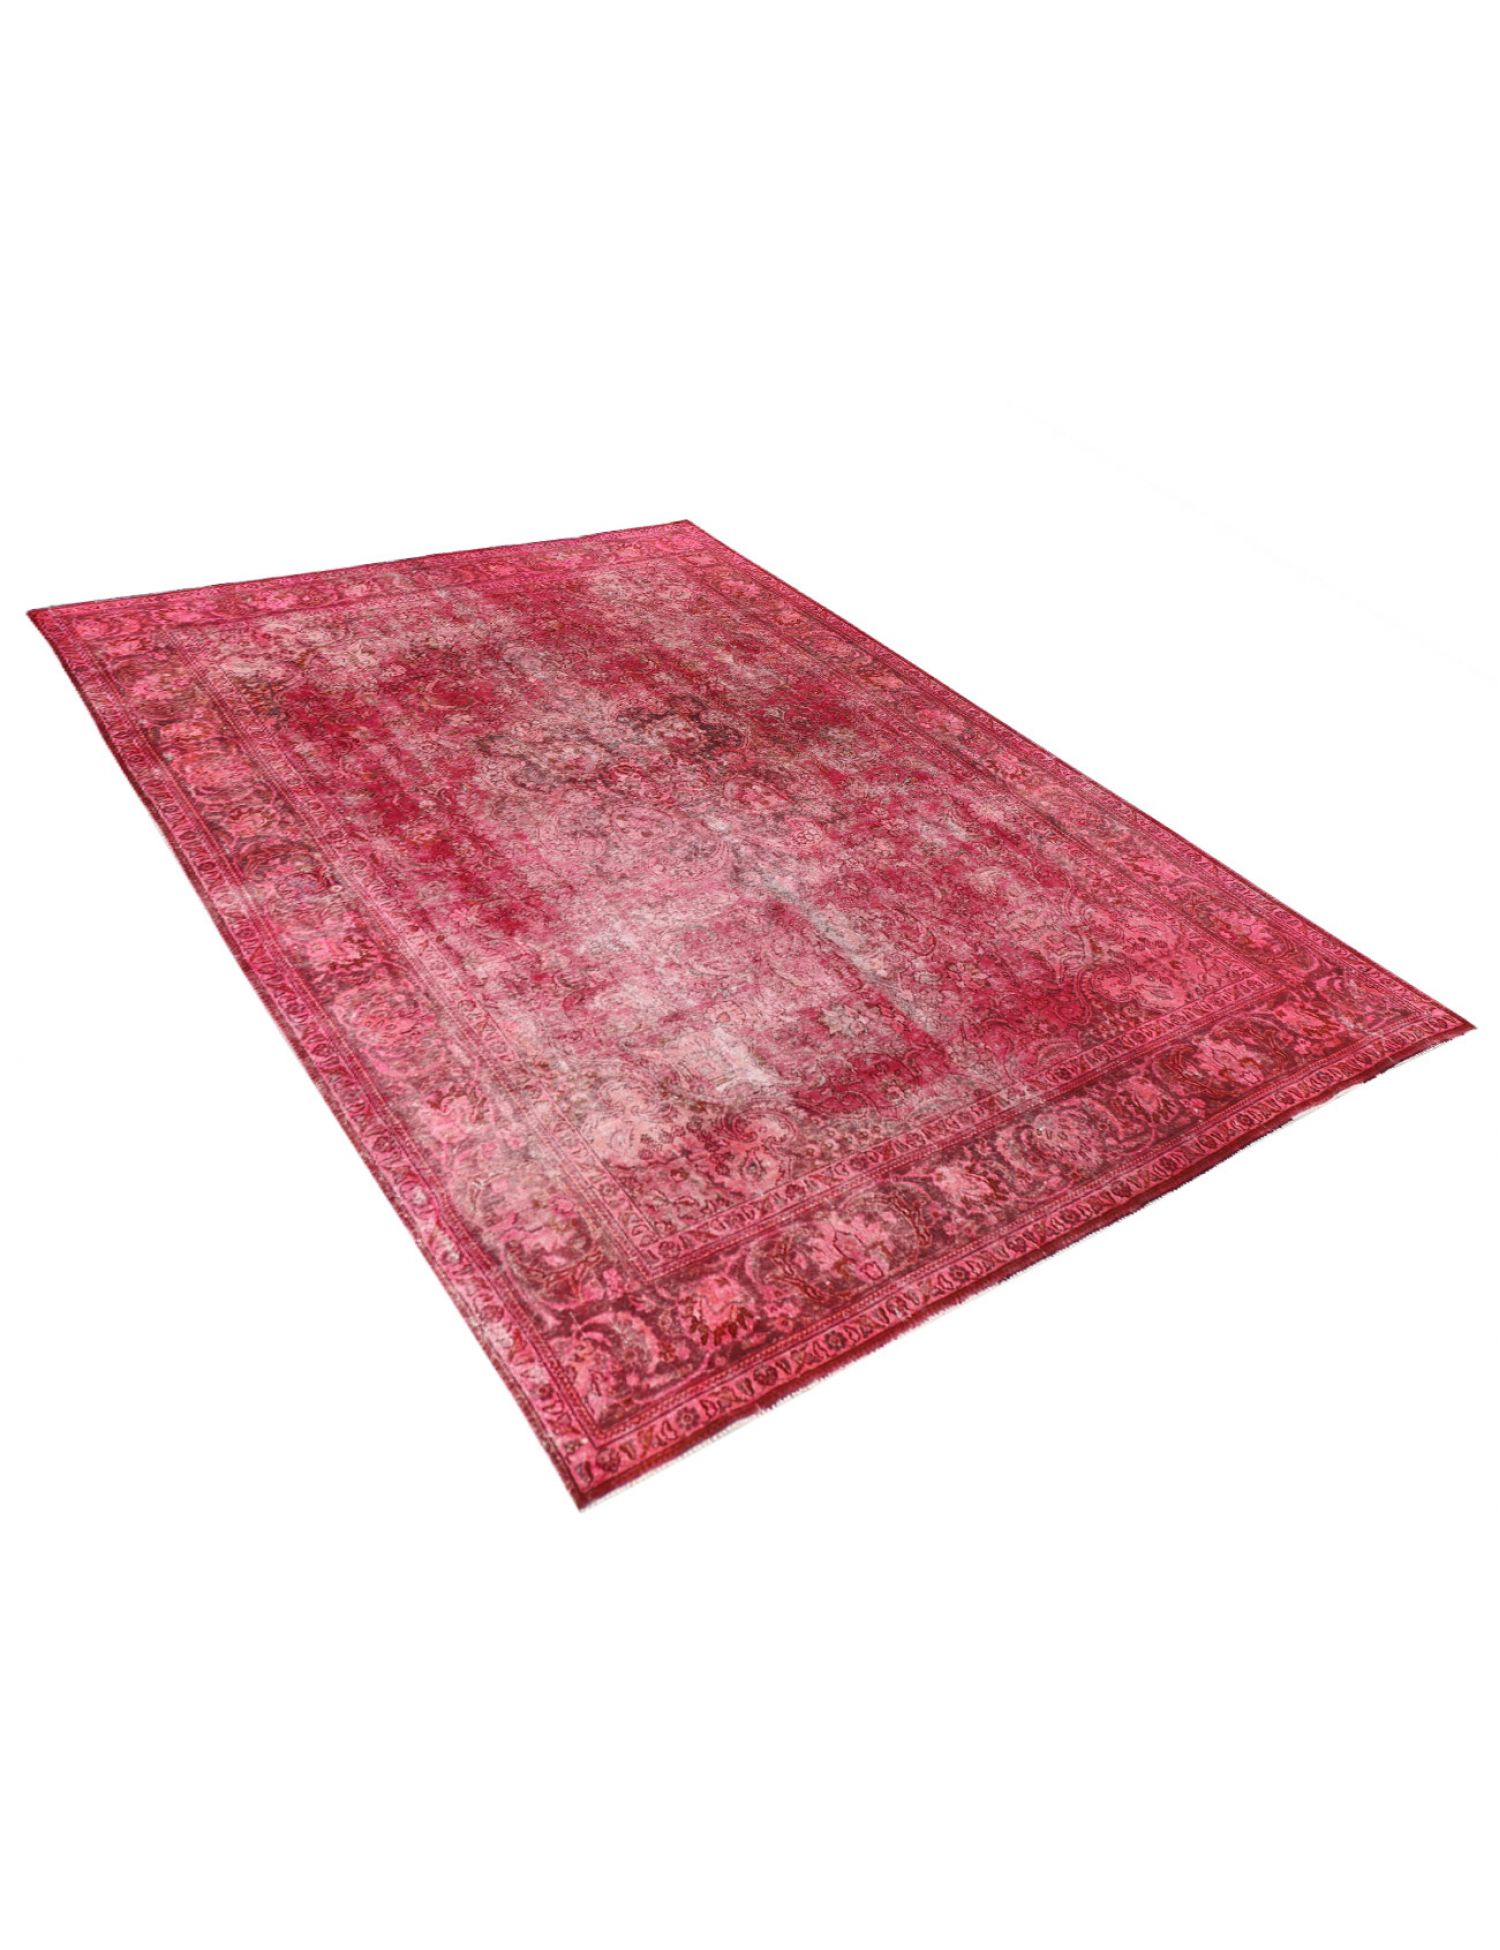 Vintage Carpet  red <br/>394 x 304 cm